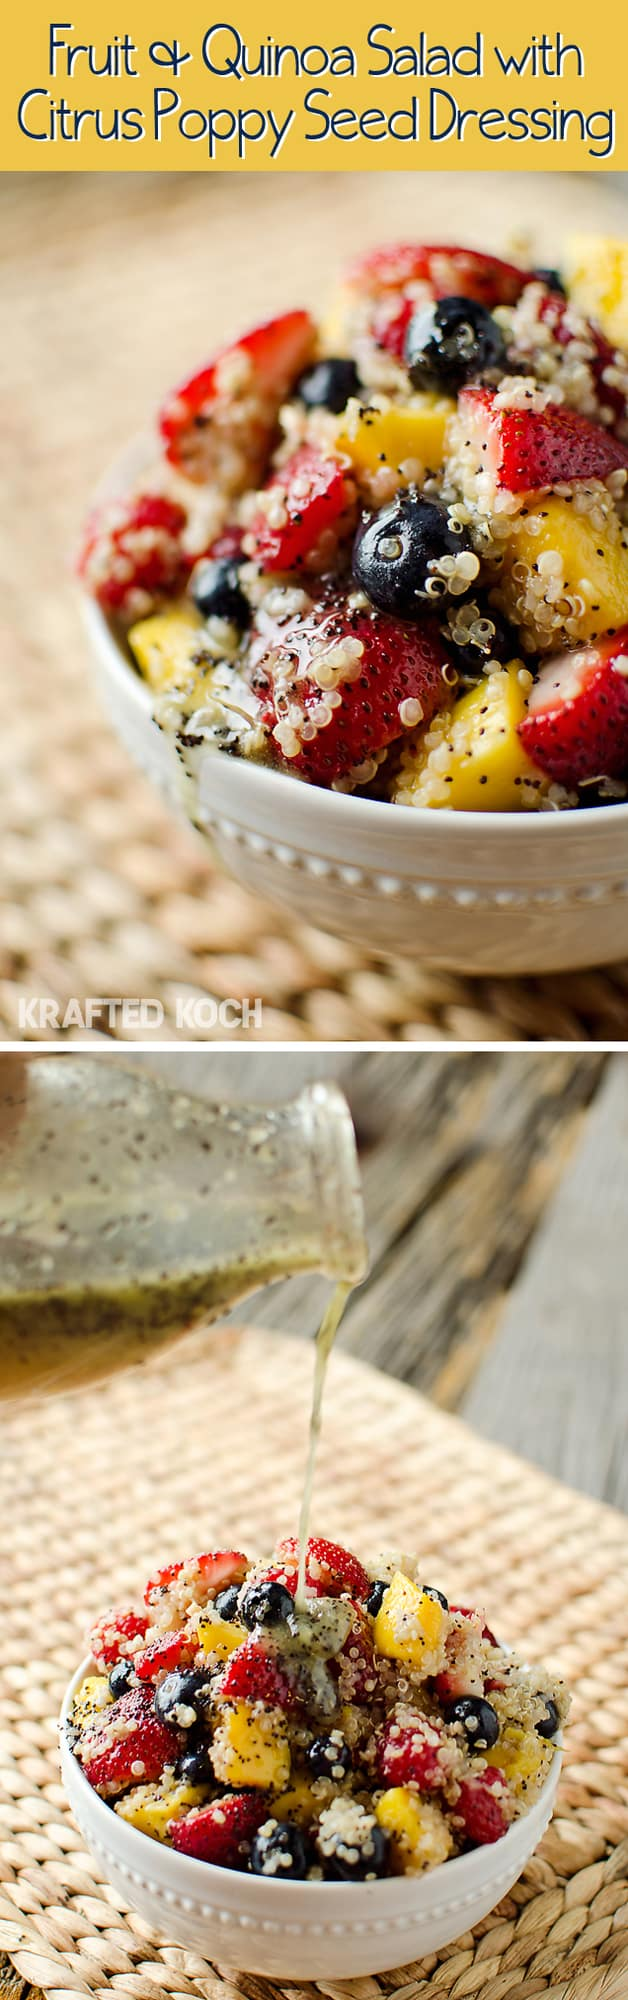 Citrus Salad With Creamy Poppy Seed Dressing Recipes — Dishmaps